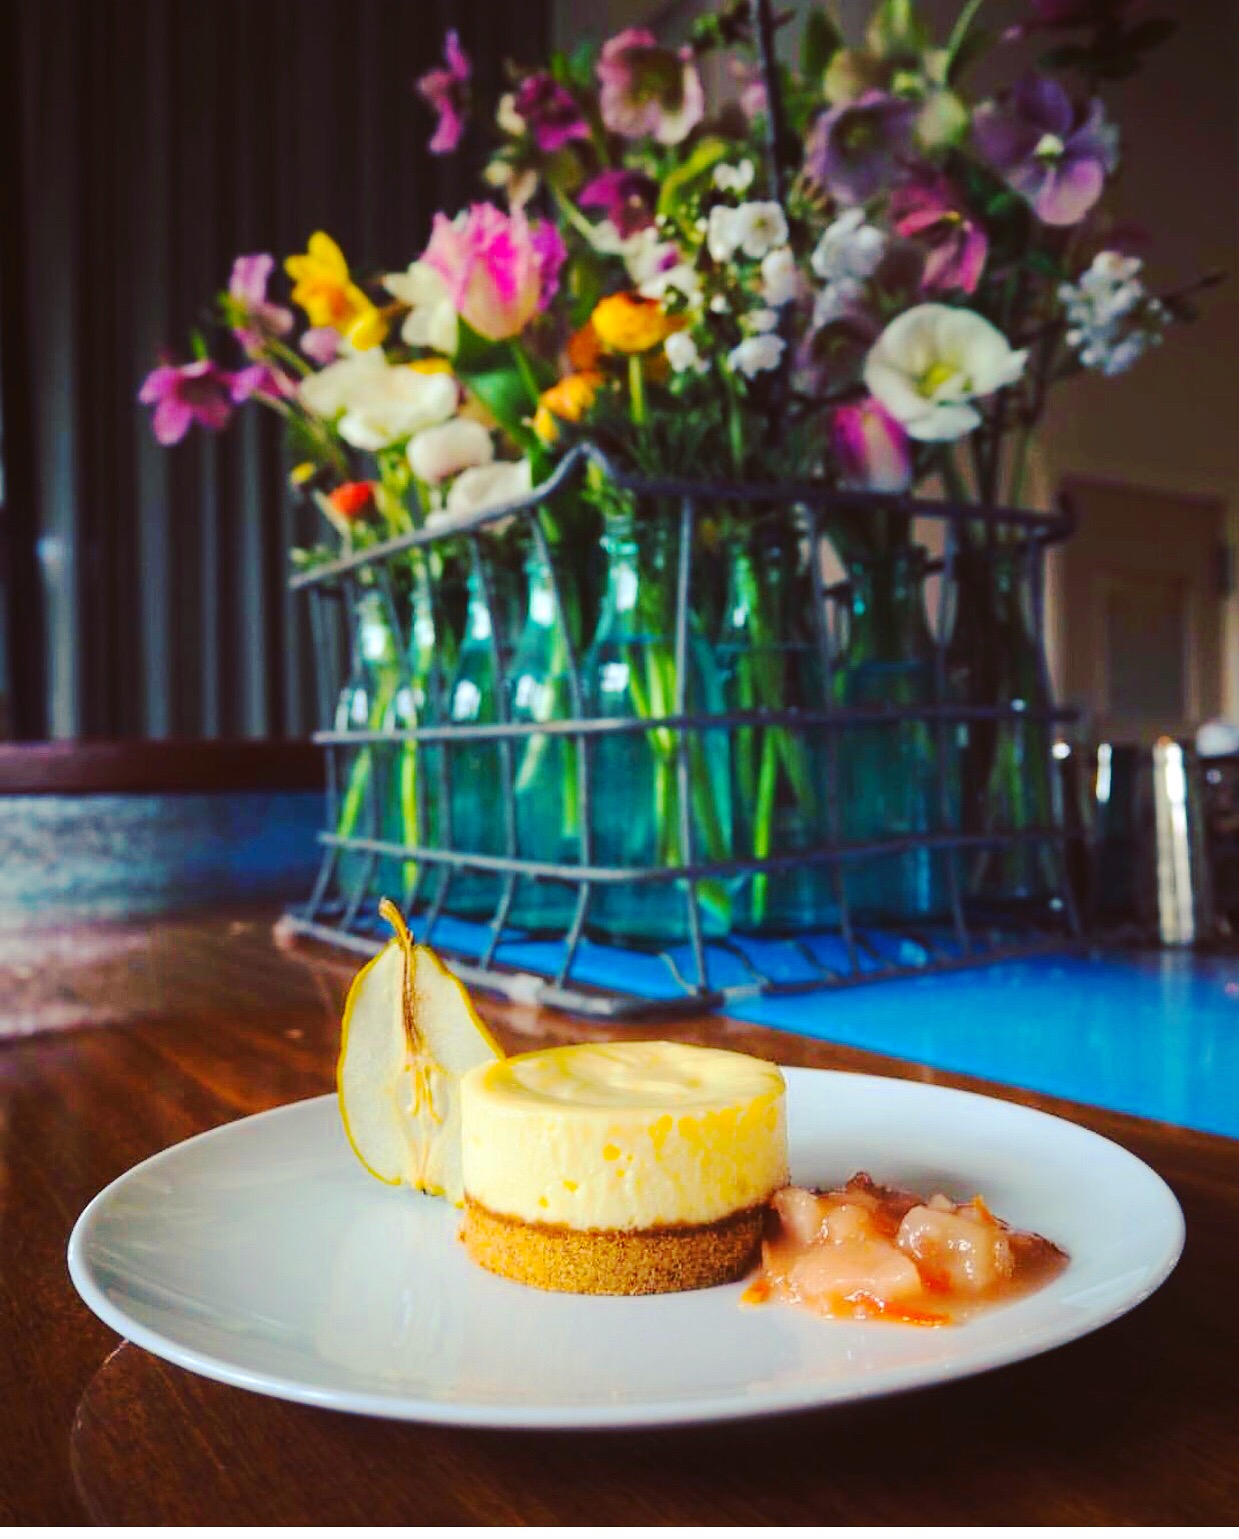 In the Barn: Bellwether Farm's Cheesecake with Barndiva Farm pears, preserved and dehydrated. Spring floral arrangement by Daniel Carlson. Image by Eva Perla, a German journalist writing about the history of farm to table in Healdsburg.